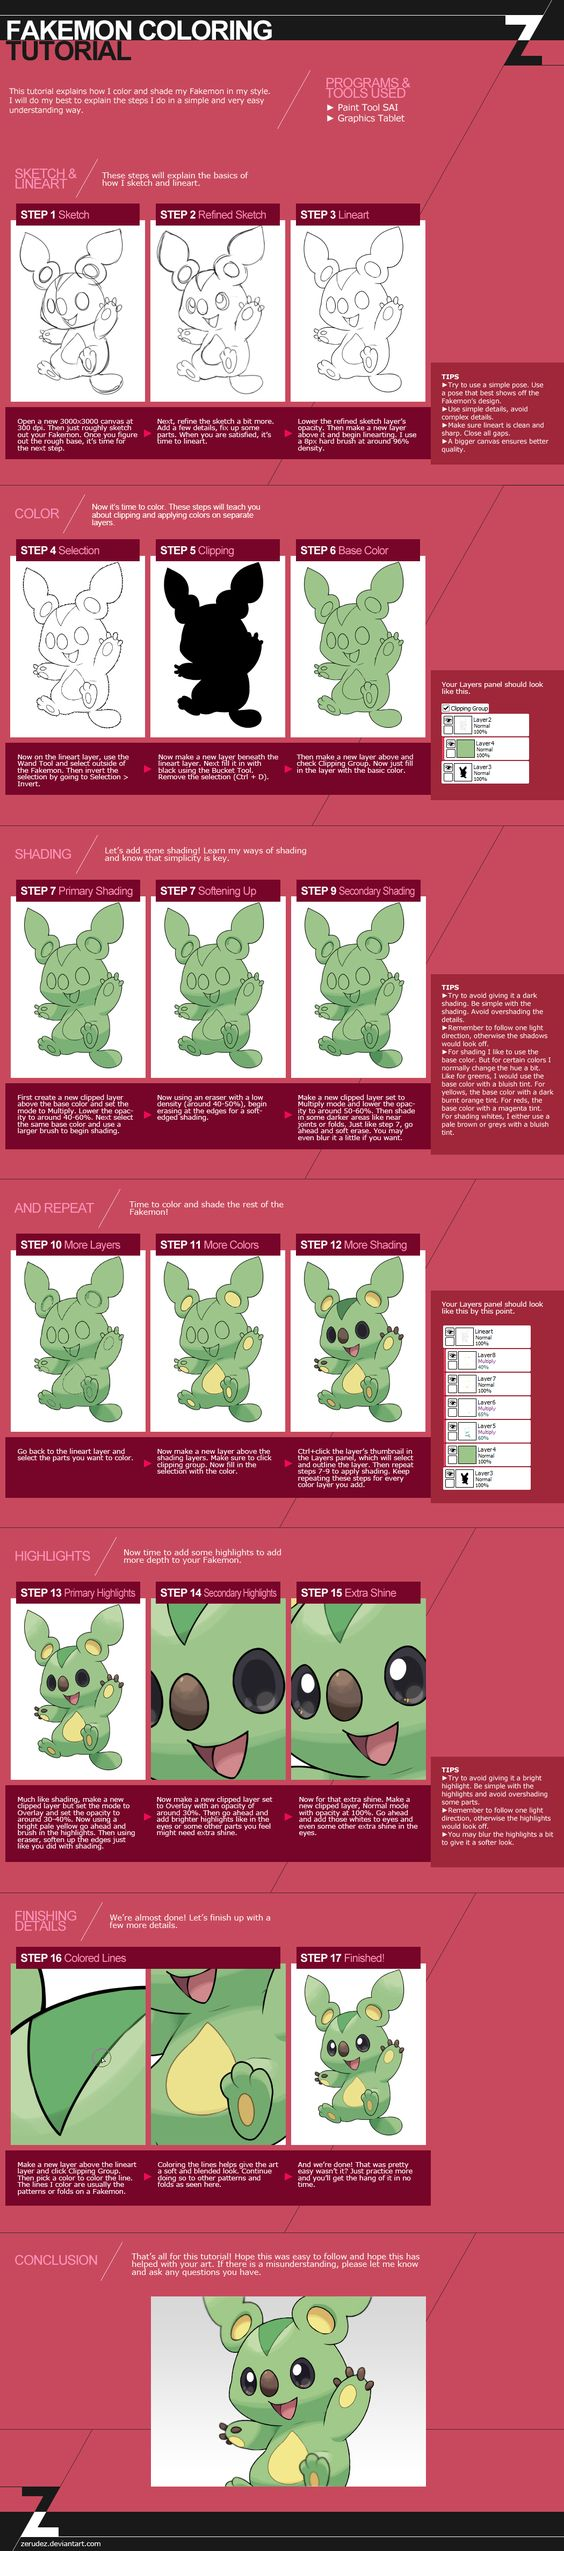 Fakemon Coloring Tutorial by zerudez.deviantart.com on @DeviantArt—I hope that soon I get Paint Tool SAI so I can draw some of my Fakemon designs ^.^